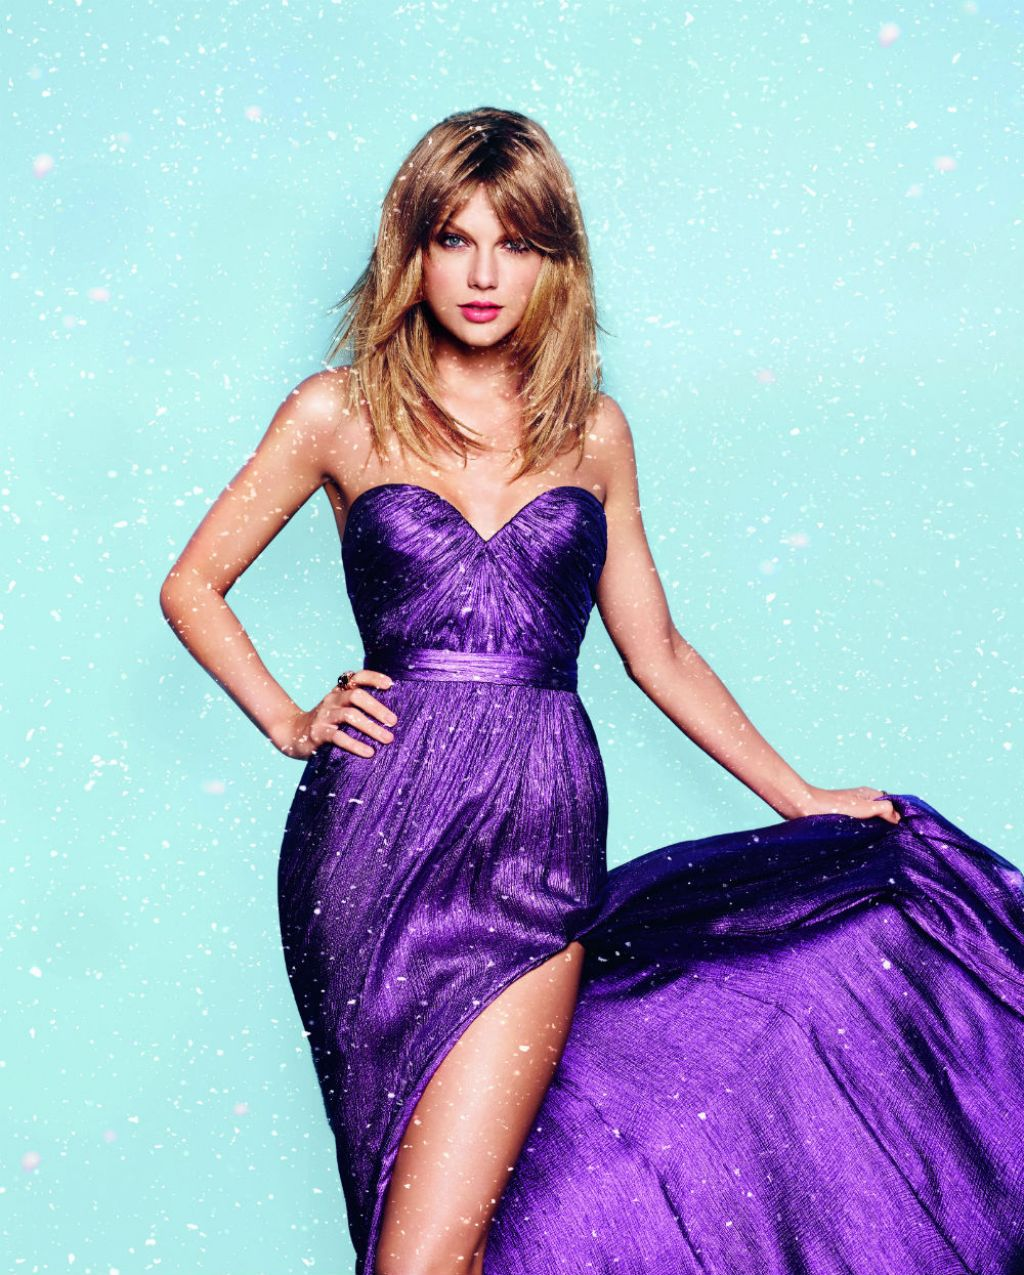 Taylor Swift - Photoshoot for Cosmopolitan Magazine (UK) December 2014